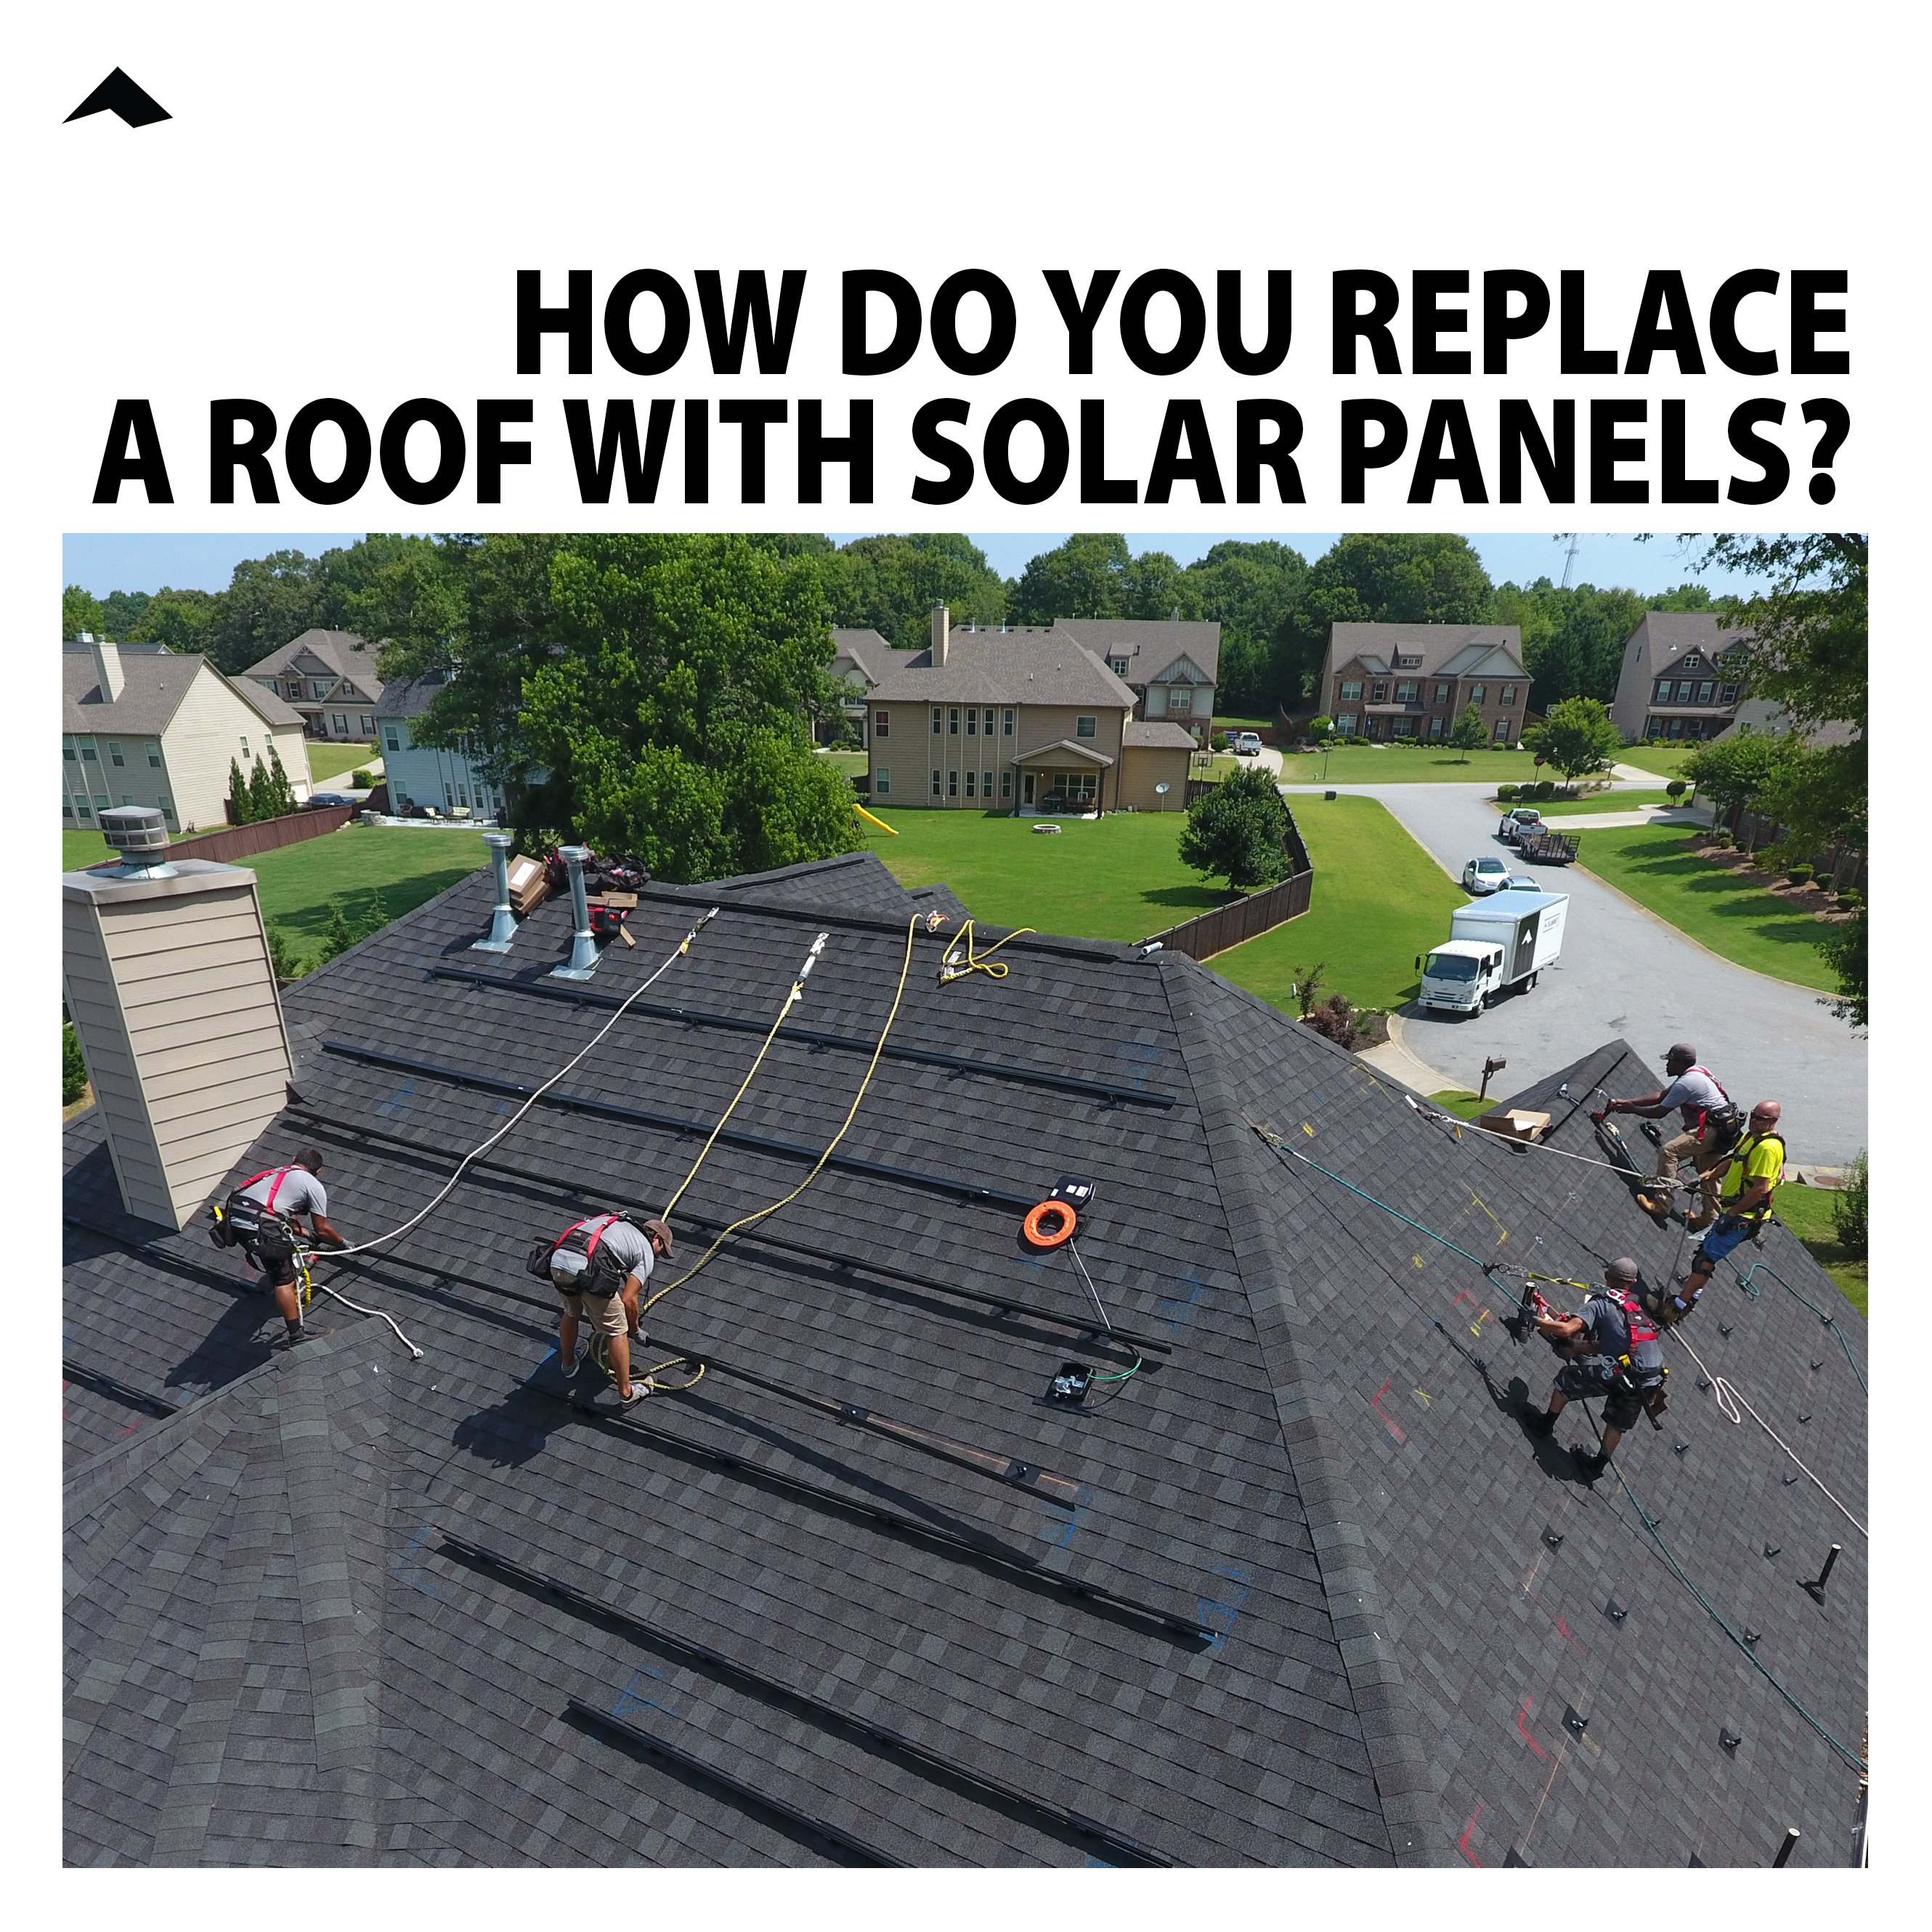 How Do You Replace a Roof with Solar Panels?